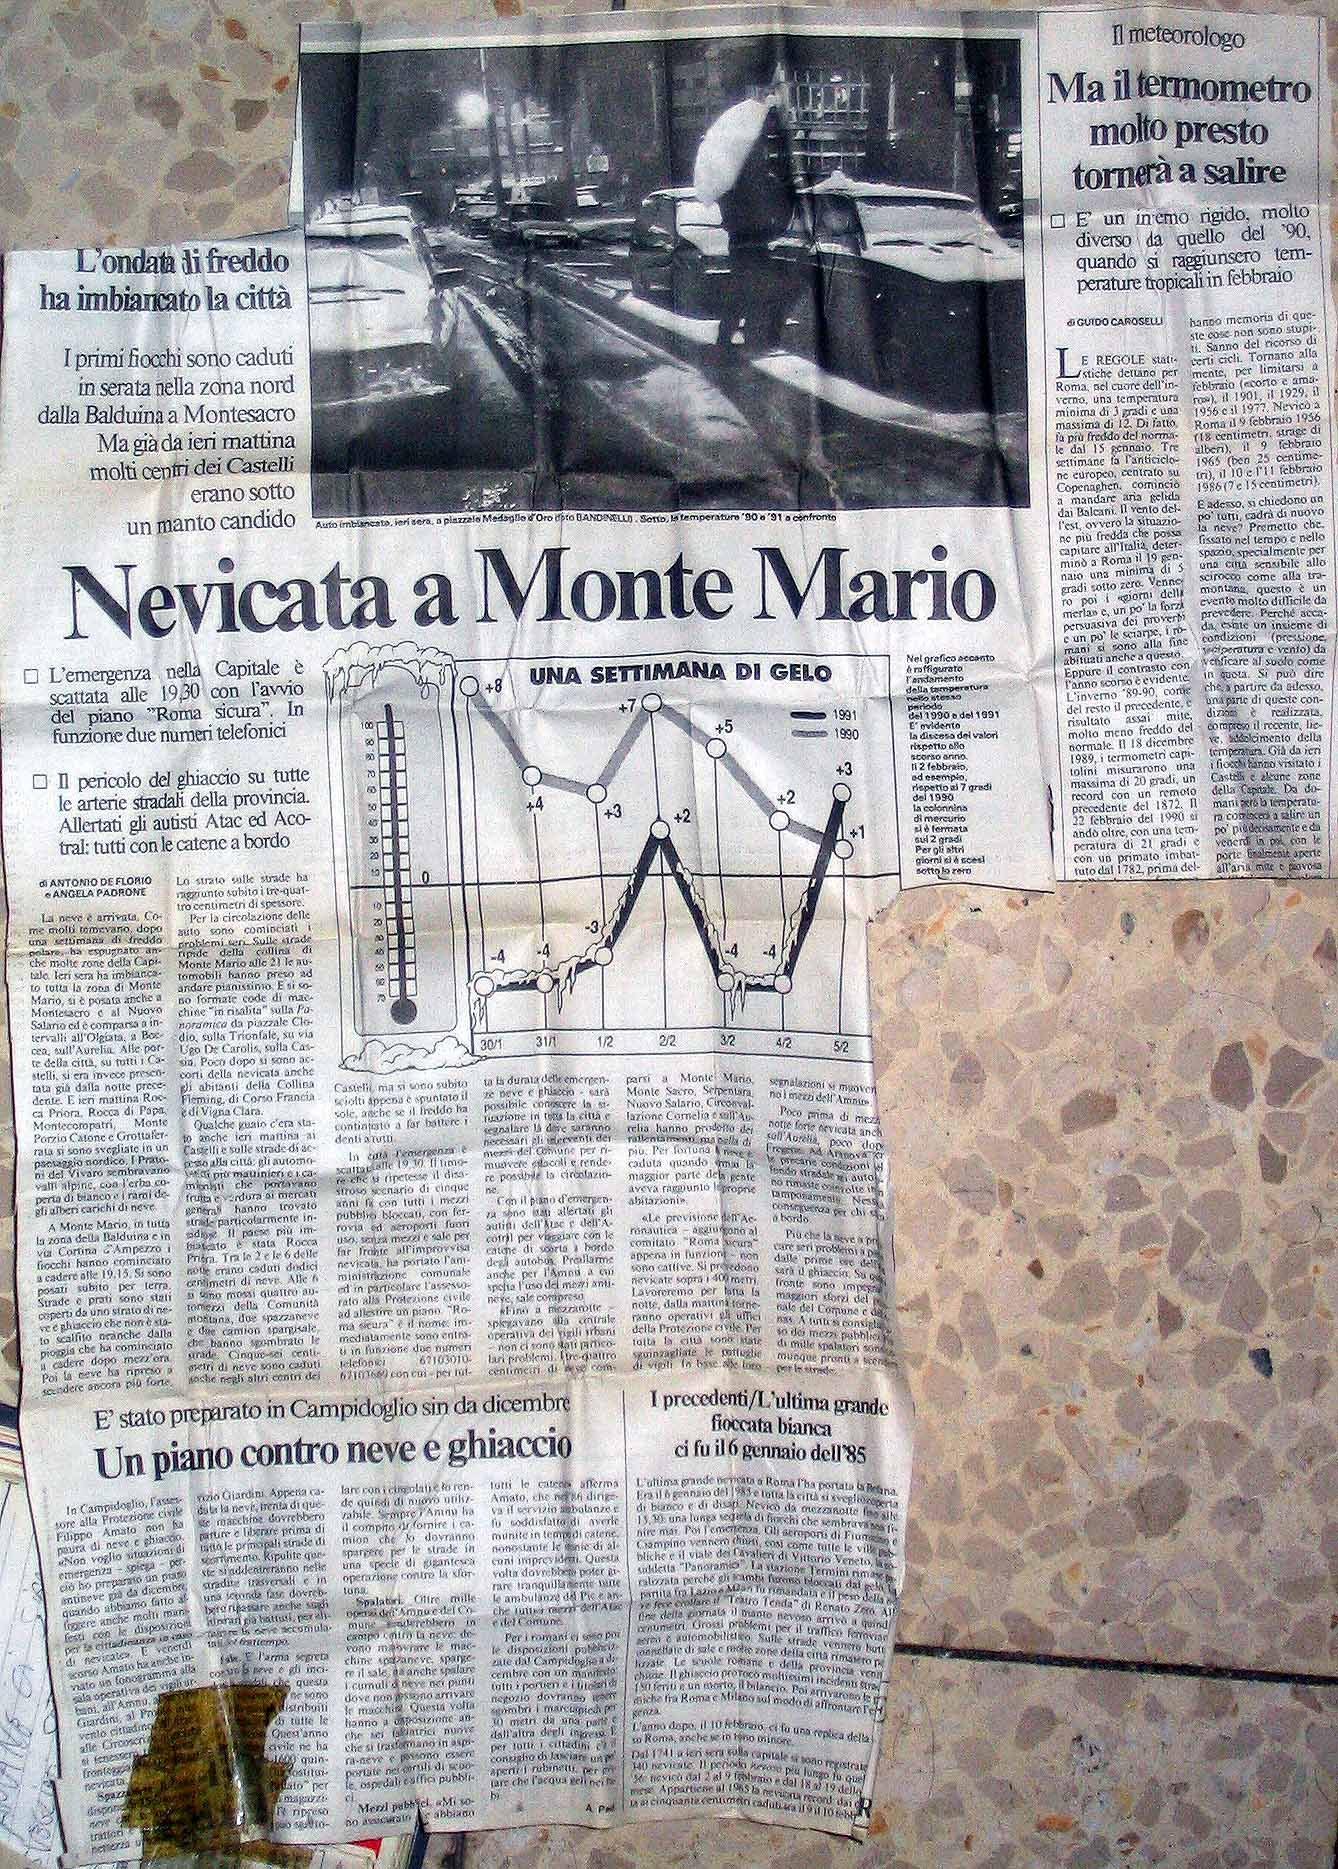 You are browsing images from the article: La neve del 5 febbraio 1991 nei Castelli Romani